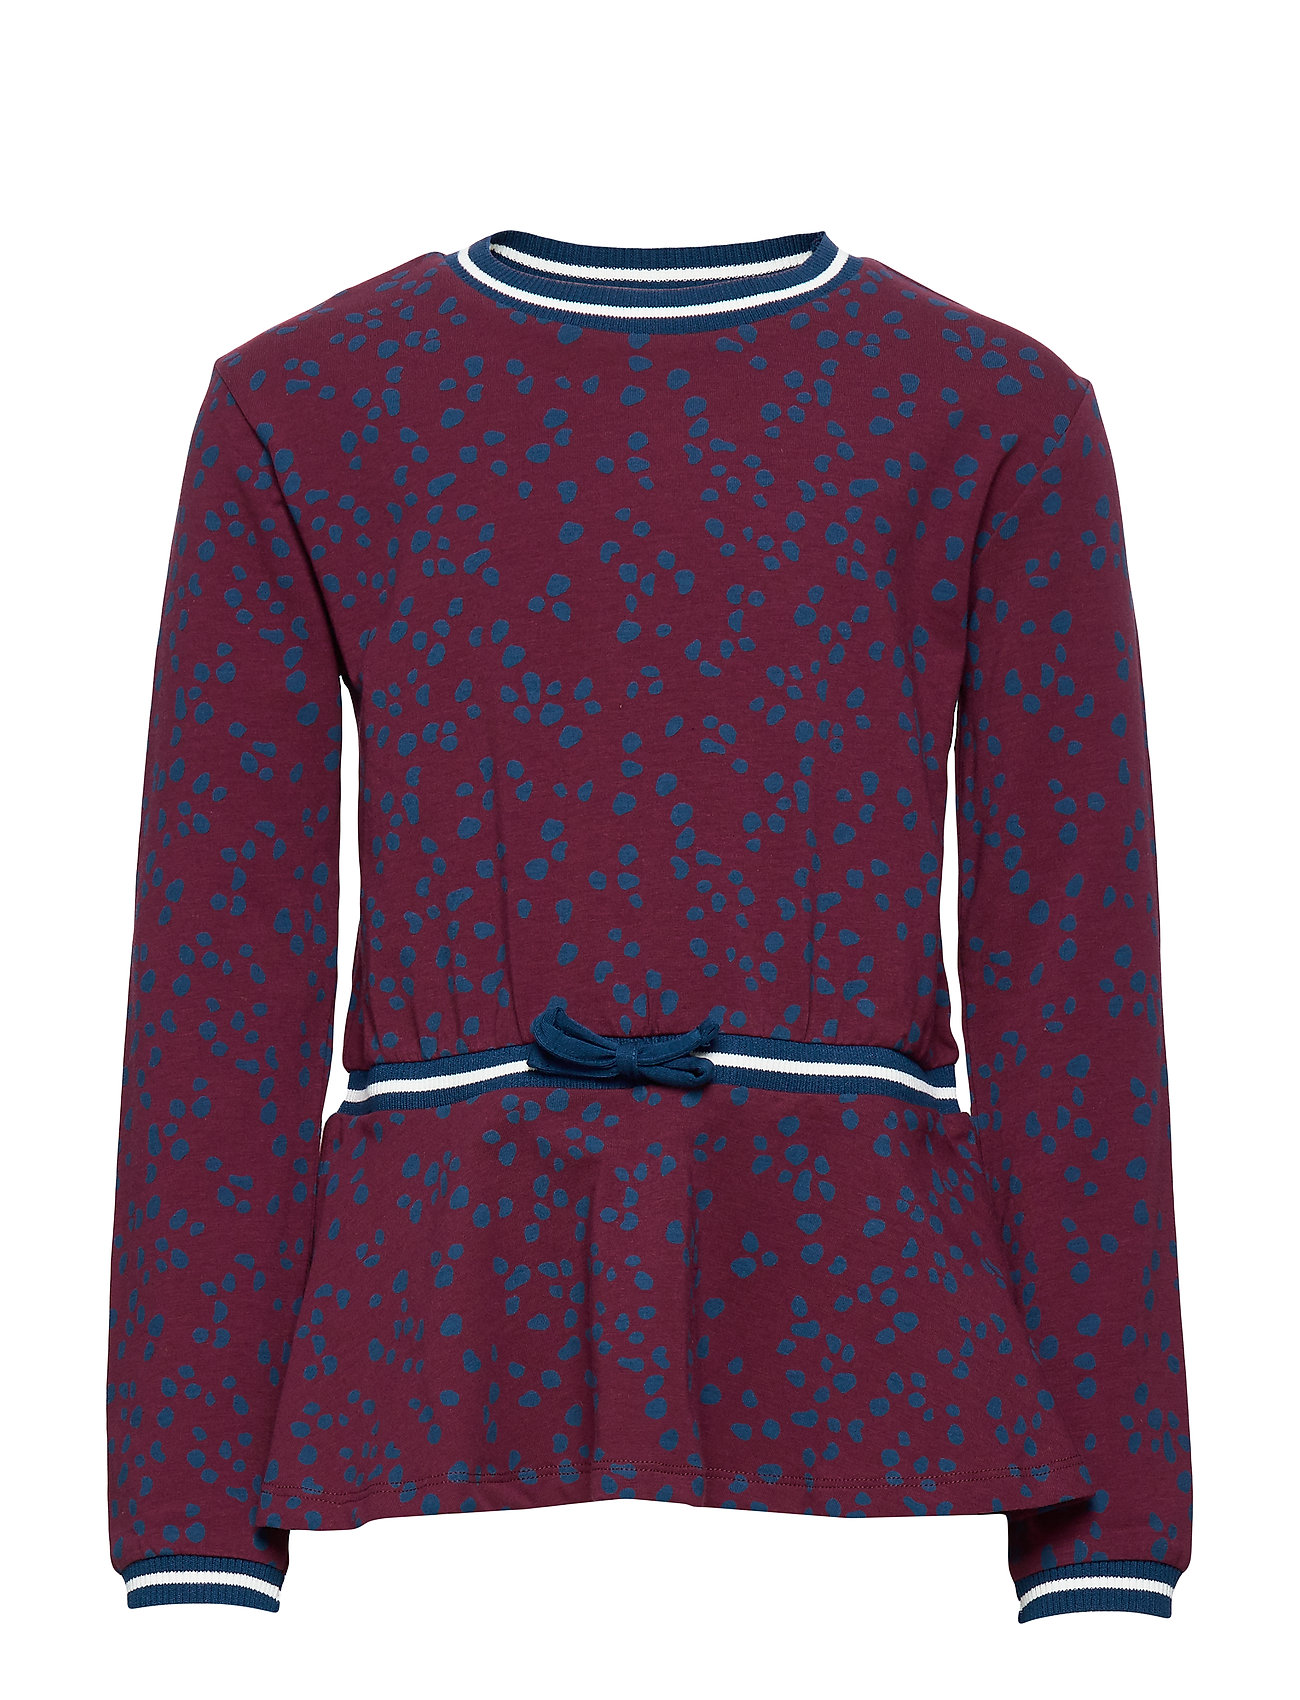 Polarn O. Pyret Top L/S AOP School - TAWNY PORT